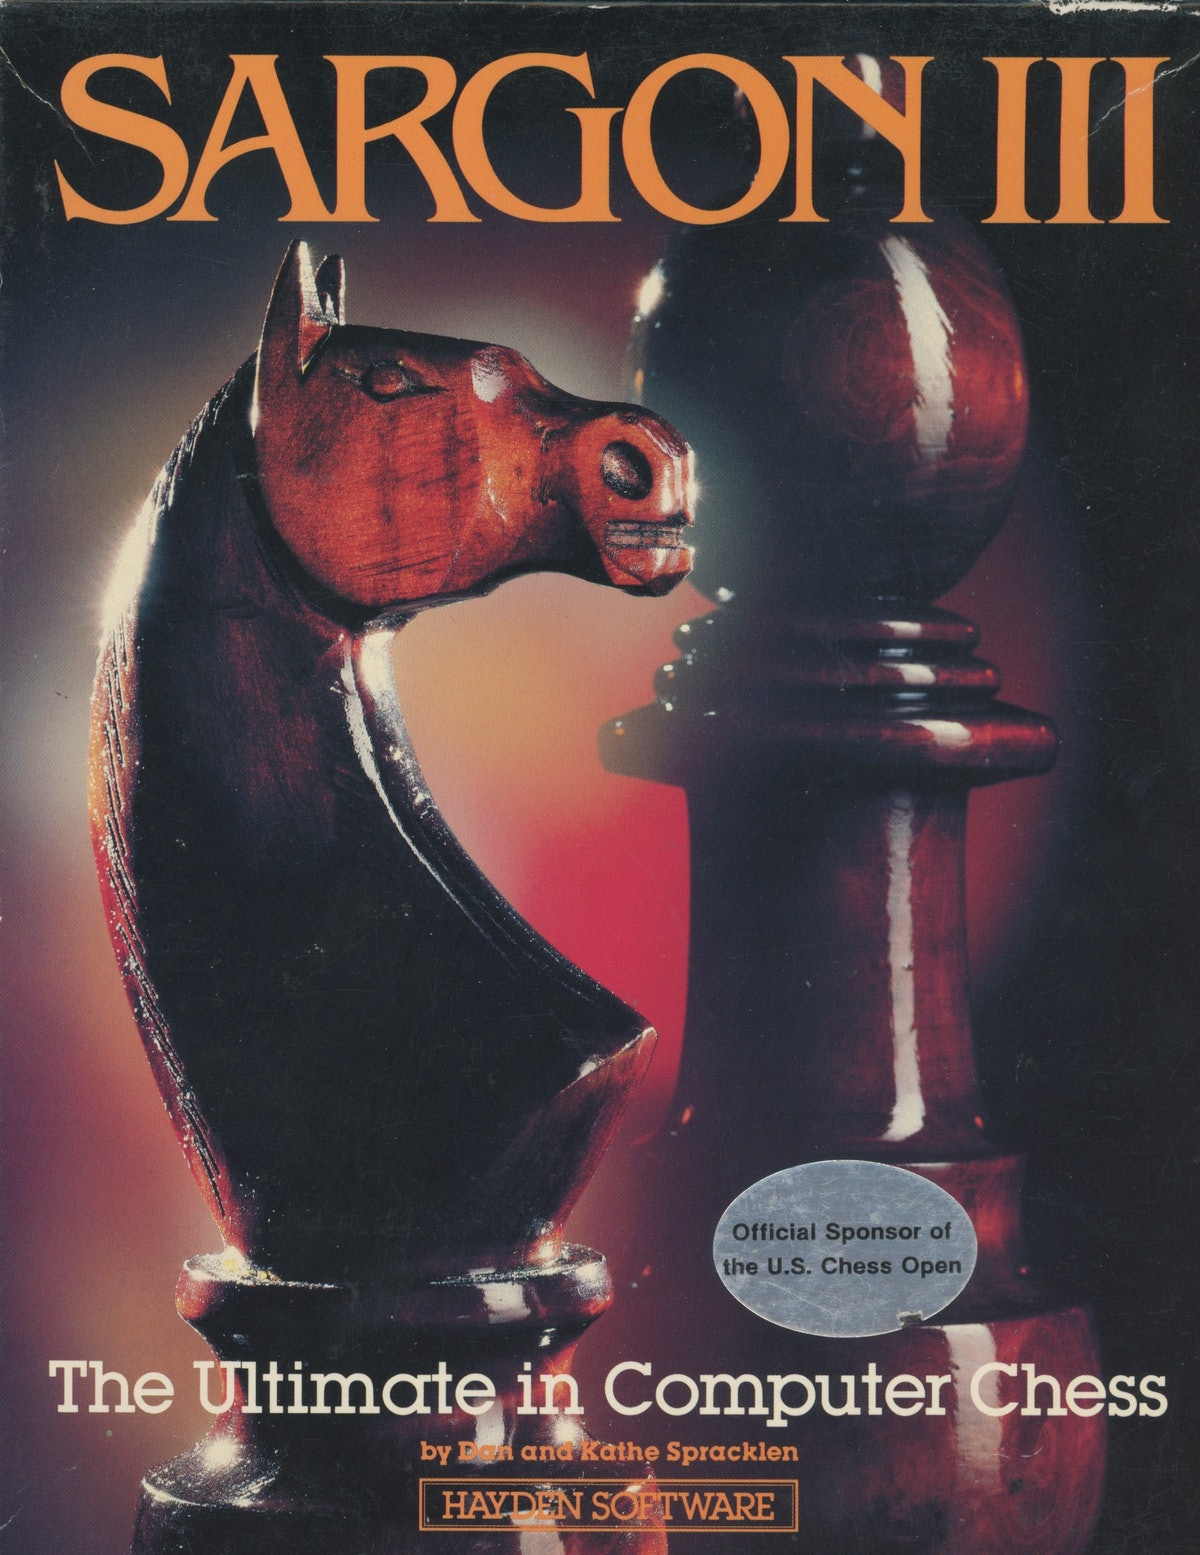 Sargon III: The Ultimate in Computer Chess